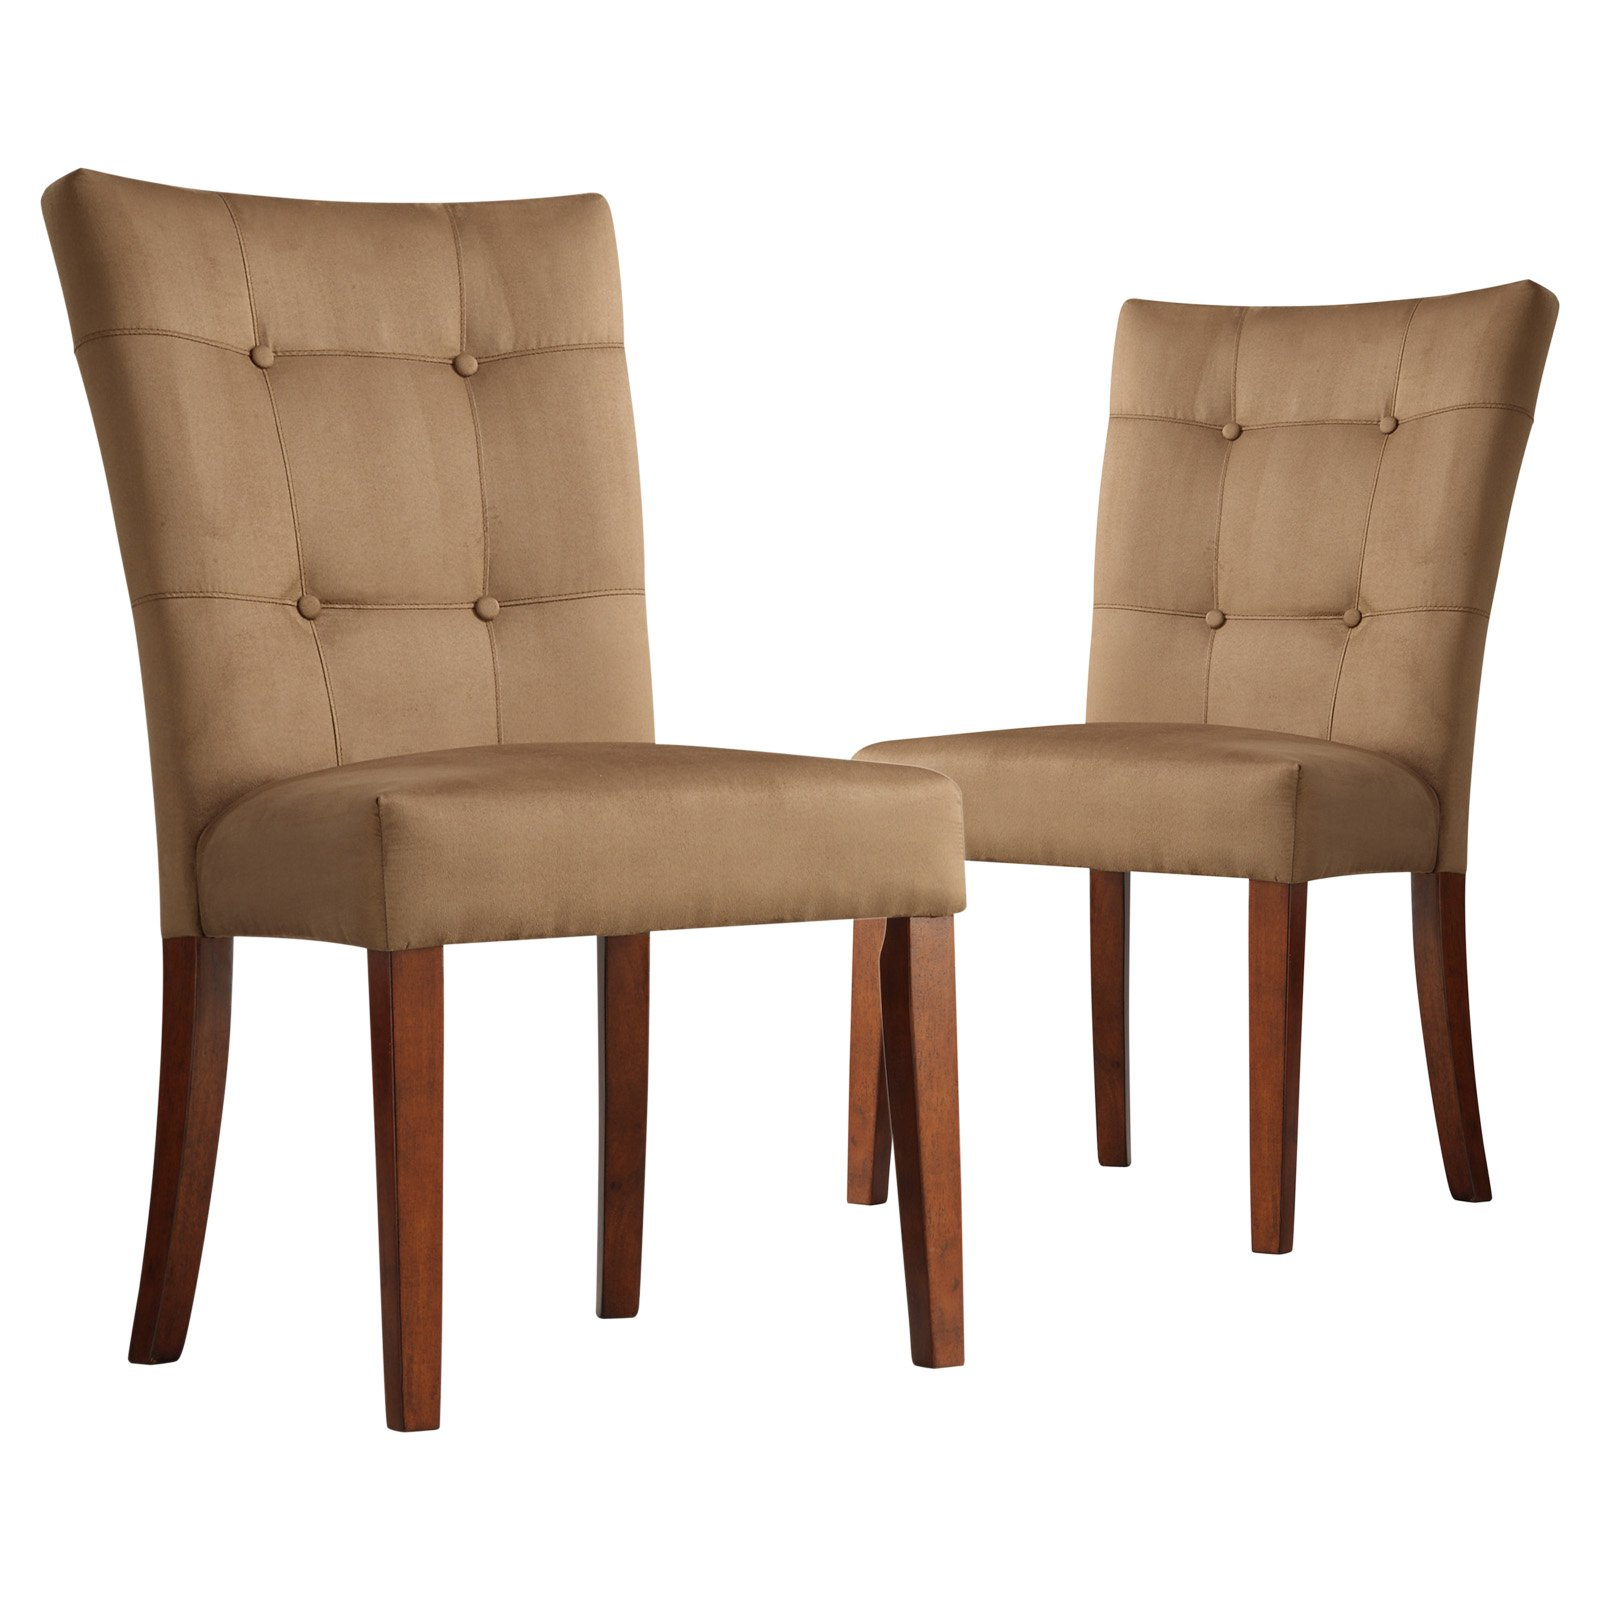 Weston Home Tufted Parsons Dining Chair - Set of 2